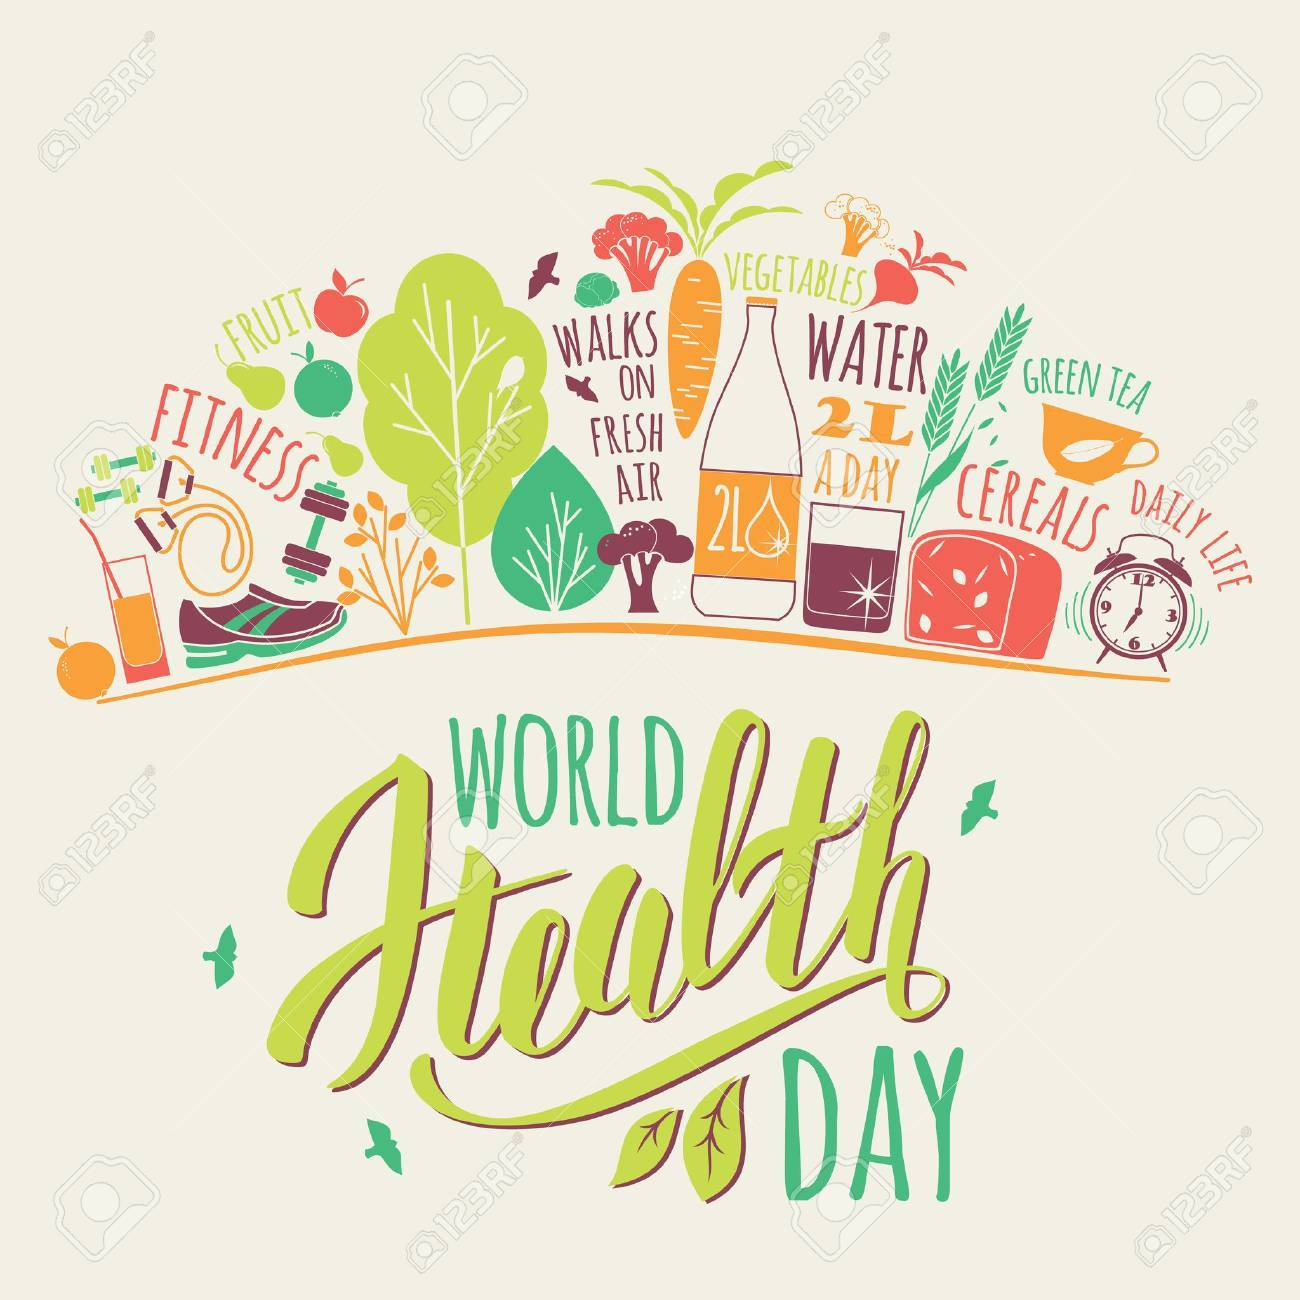 World health day concept with healty lifestyle illustration. - 55707212